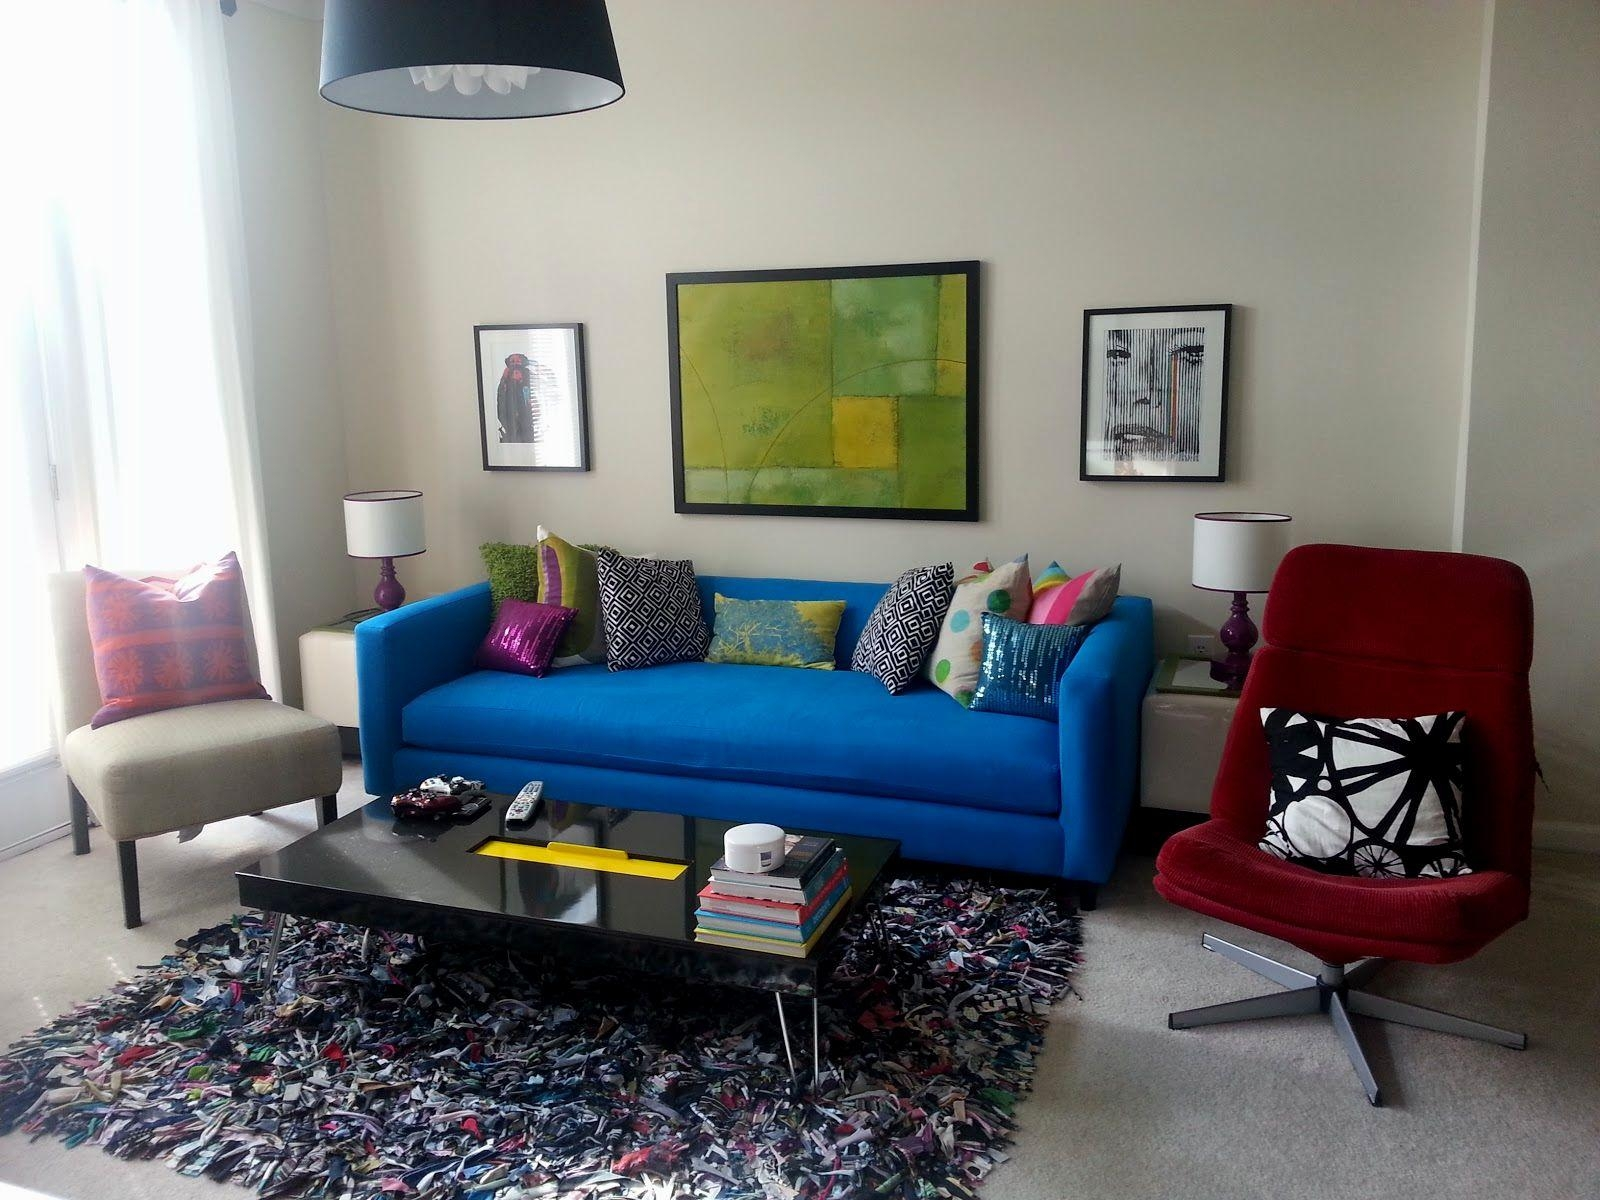 Interesting Cb2 Piazza Sofa 96 For Your Small Room Home Remodel Intended For Cb2 Piazza Sofas (View 12 of 20)